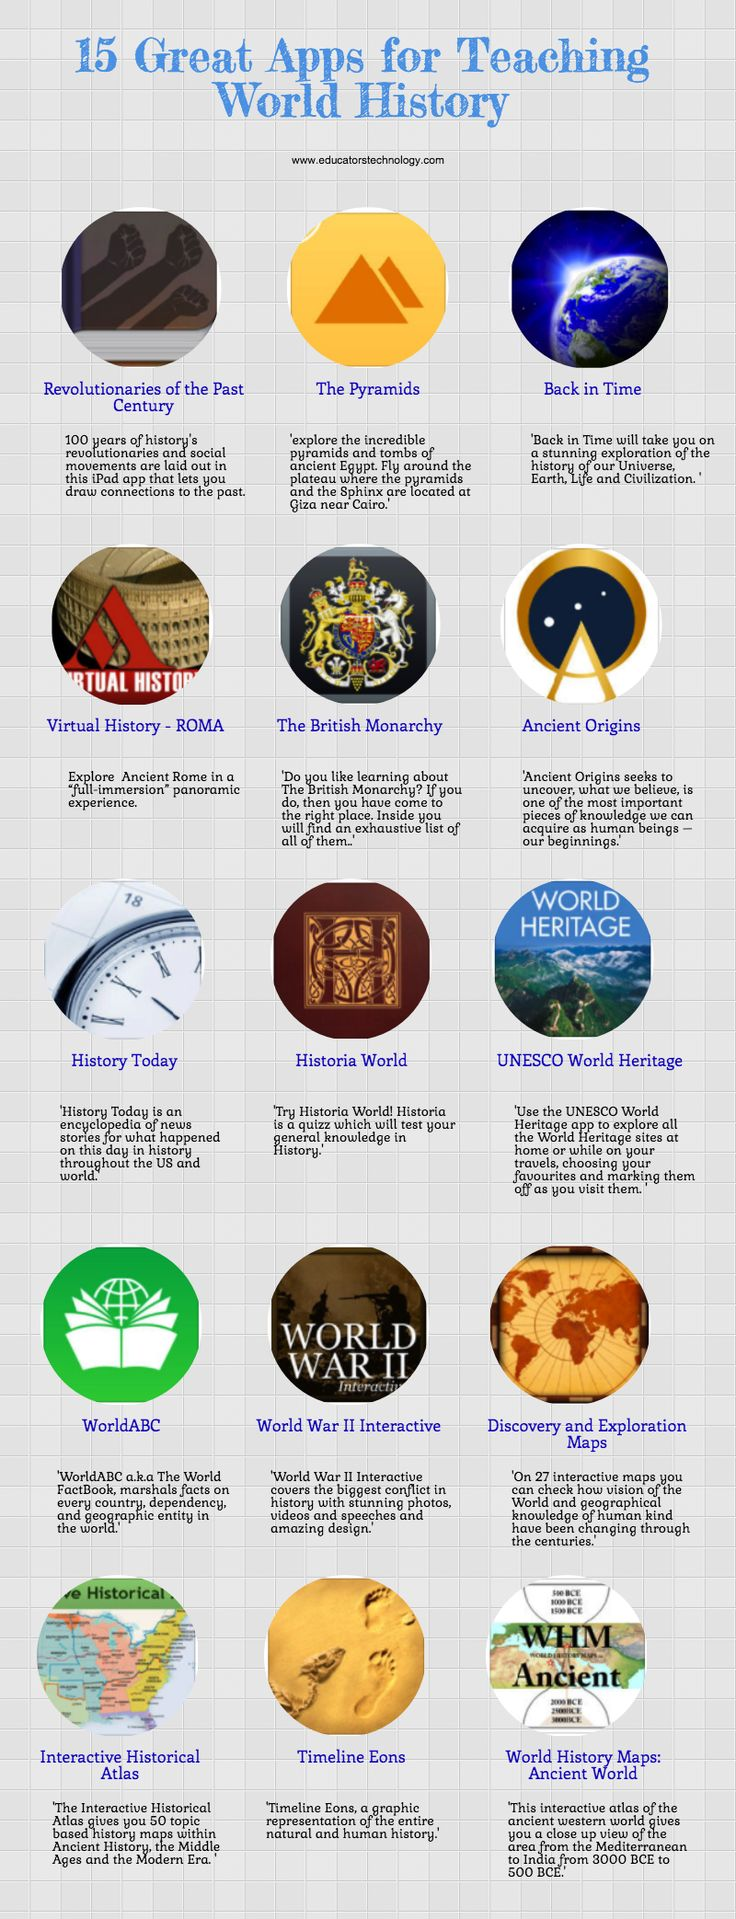 15 Great Apps for Teaching World History